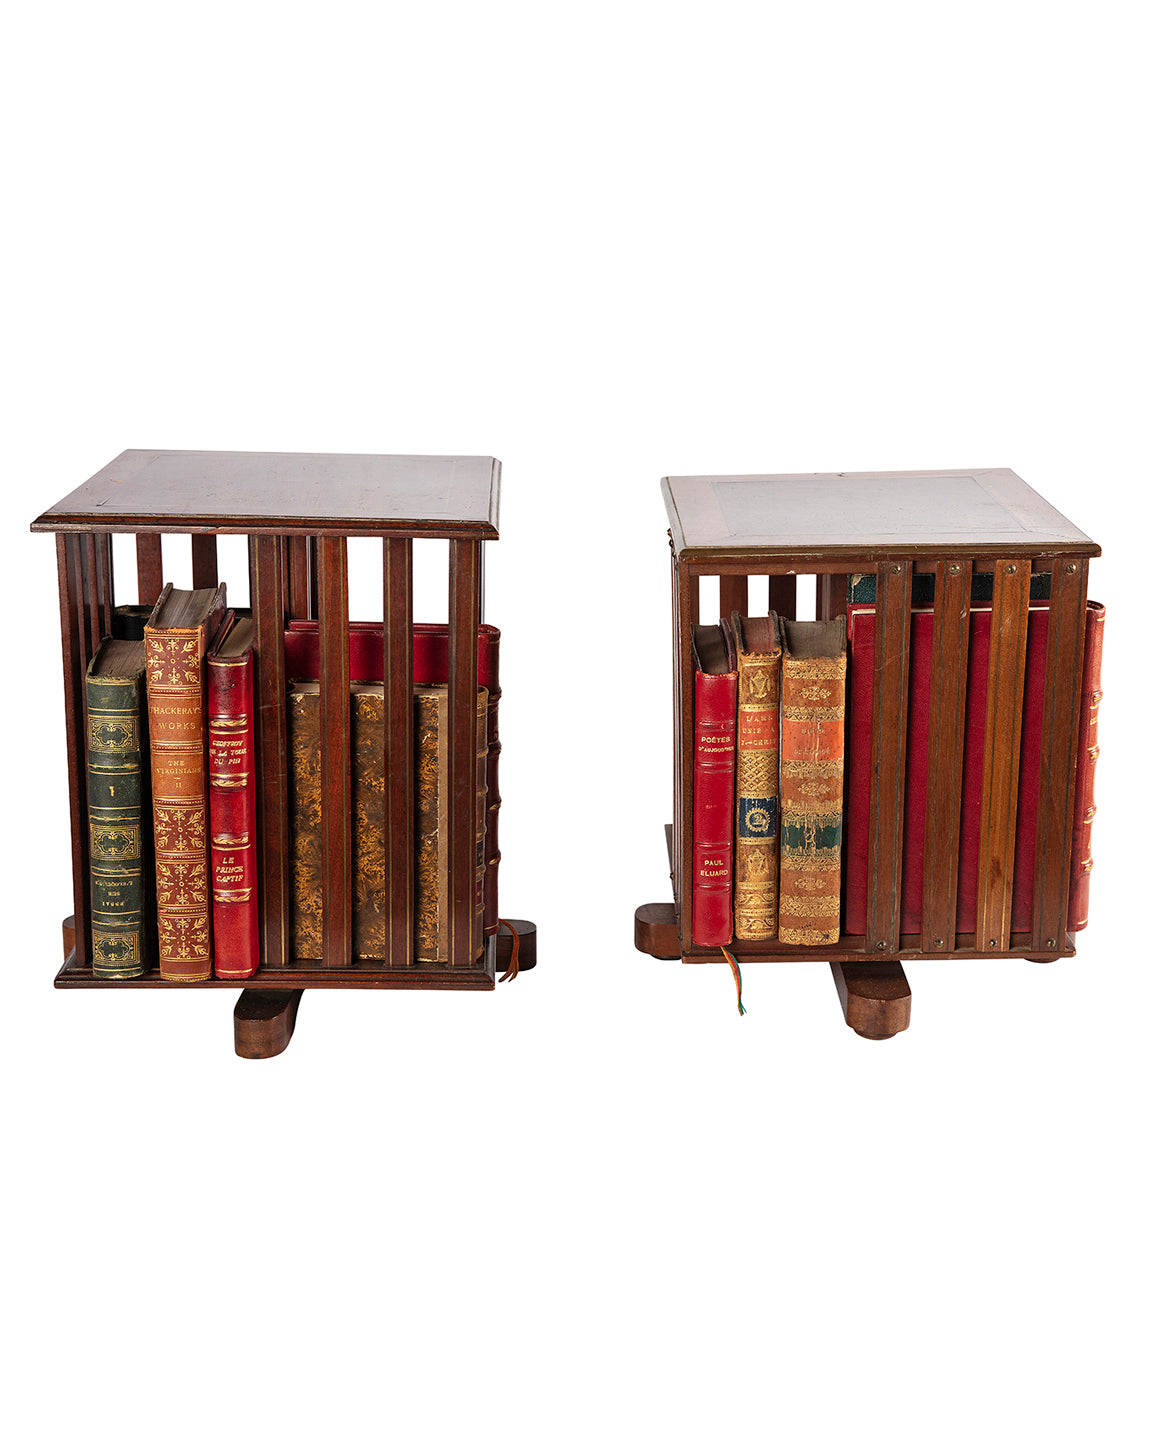 Pair of revolving bookcase tables. Beginning of the XXth century